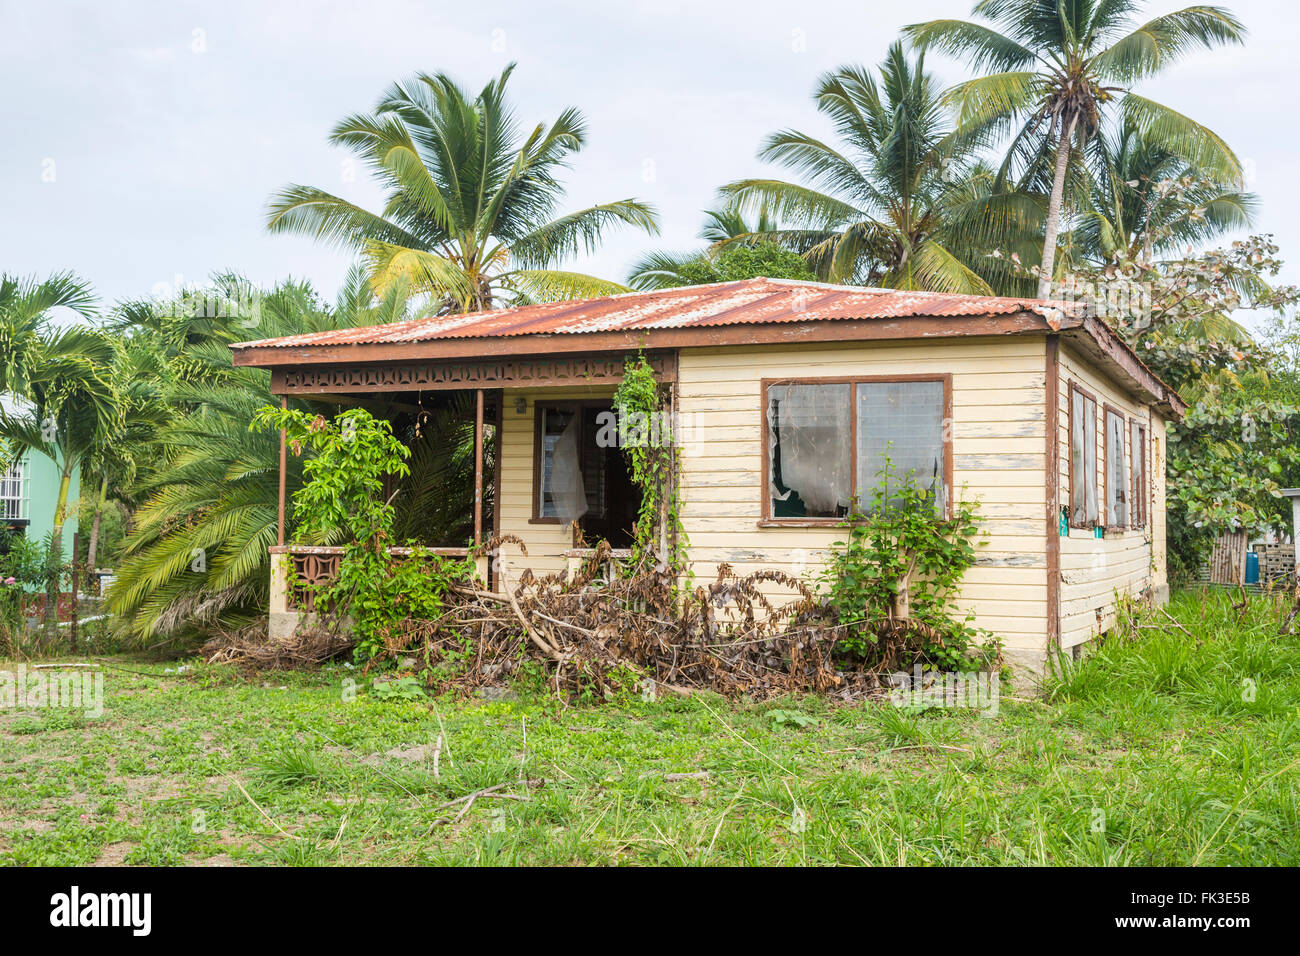 Typical run-down, dilapidated wooden single storey house in Liberta, south Antigua, Antigua and Barbuda, West Indies - Stock Image